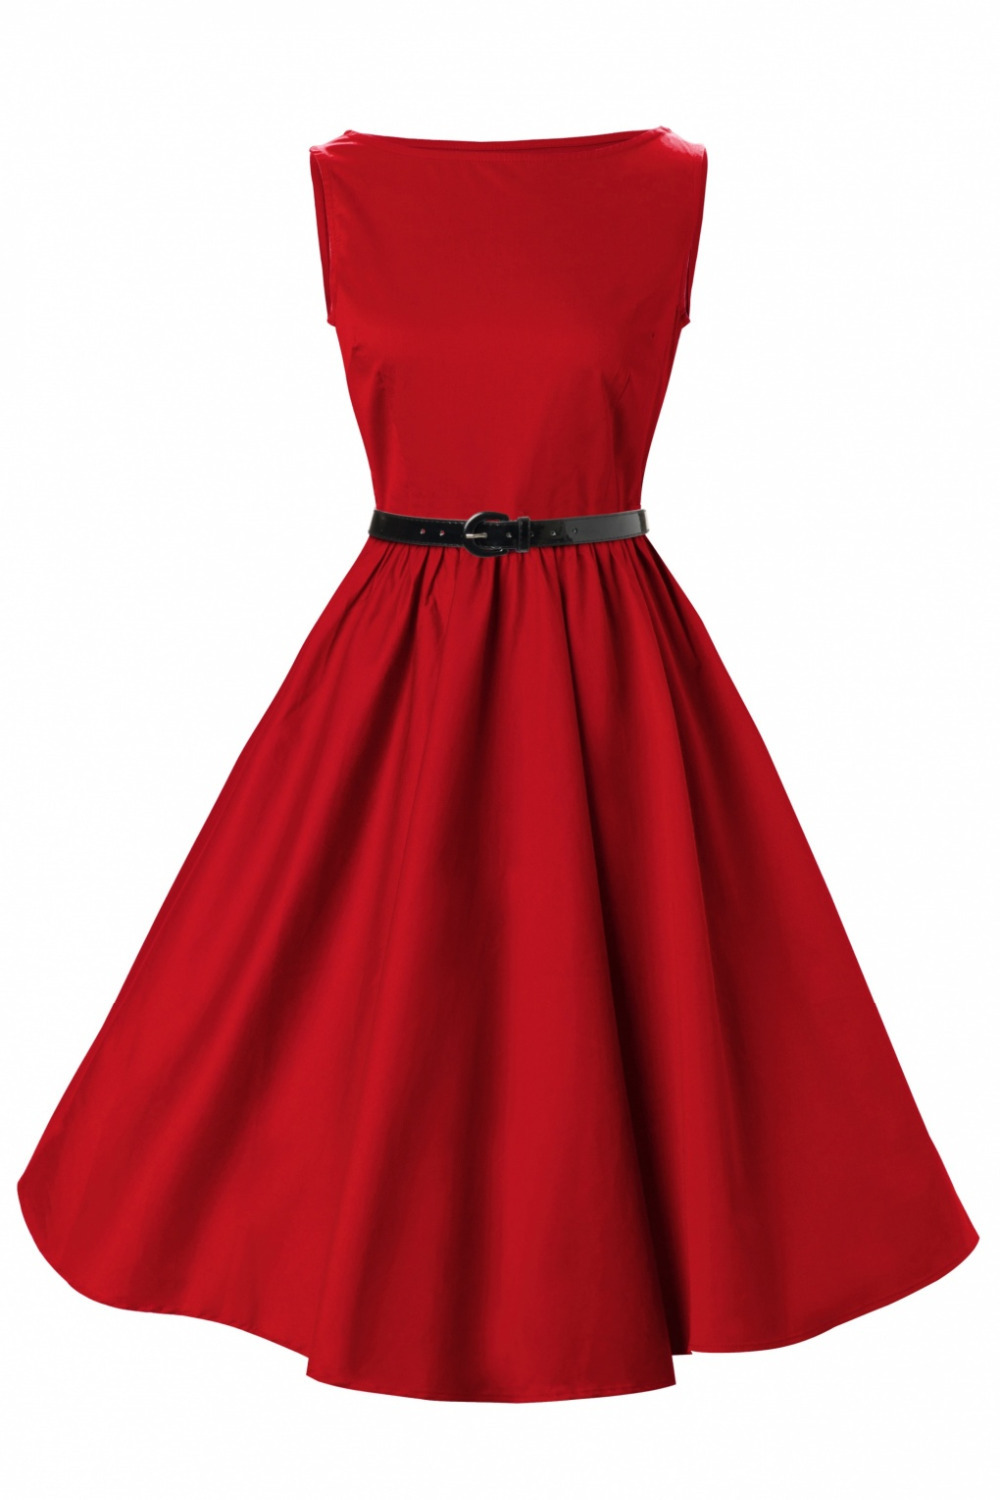 Shop Red Dress